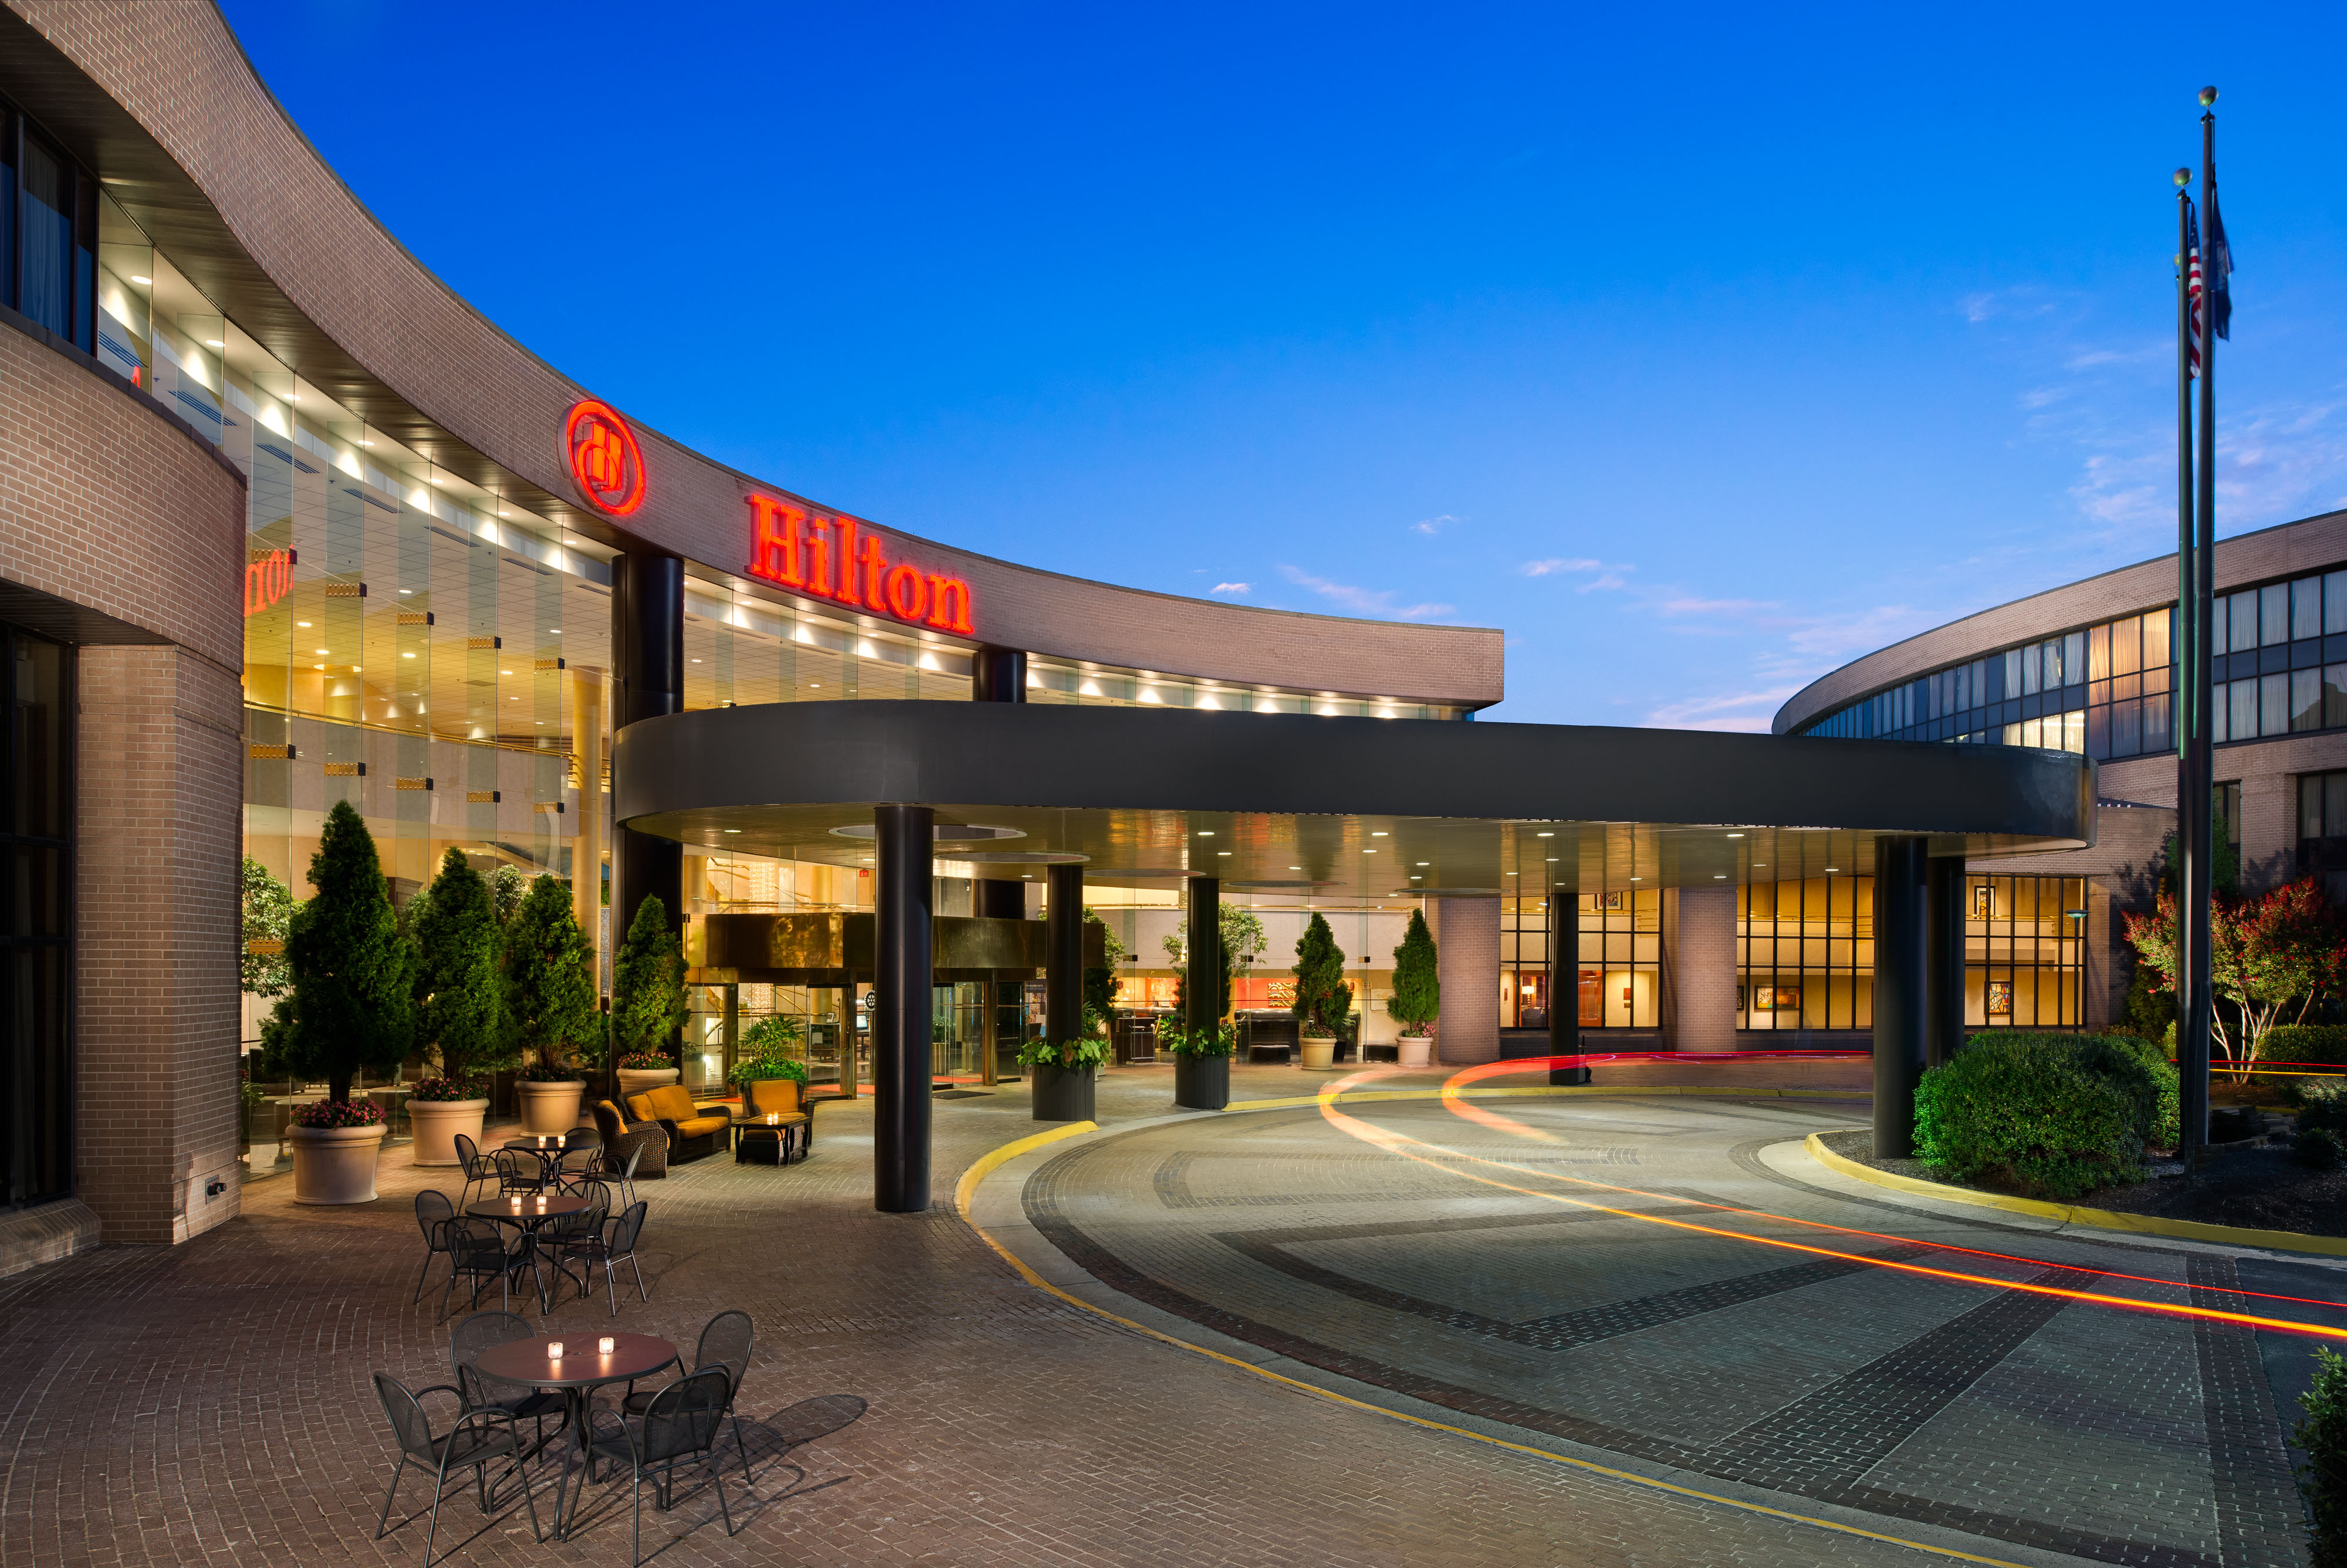 Towneplace Suites-Dulles Airport - Northern Virginia hotel